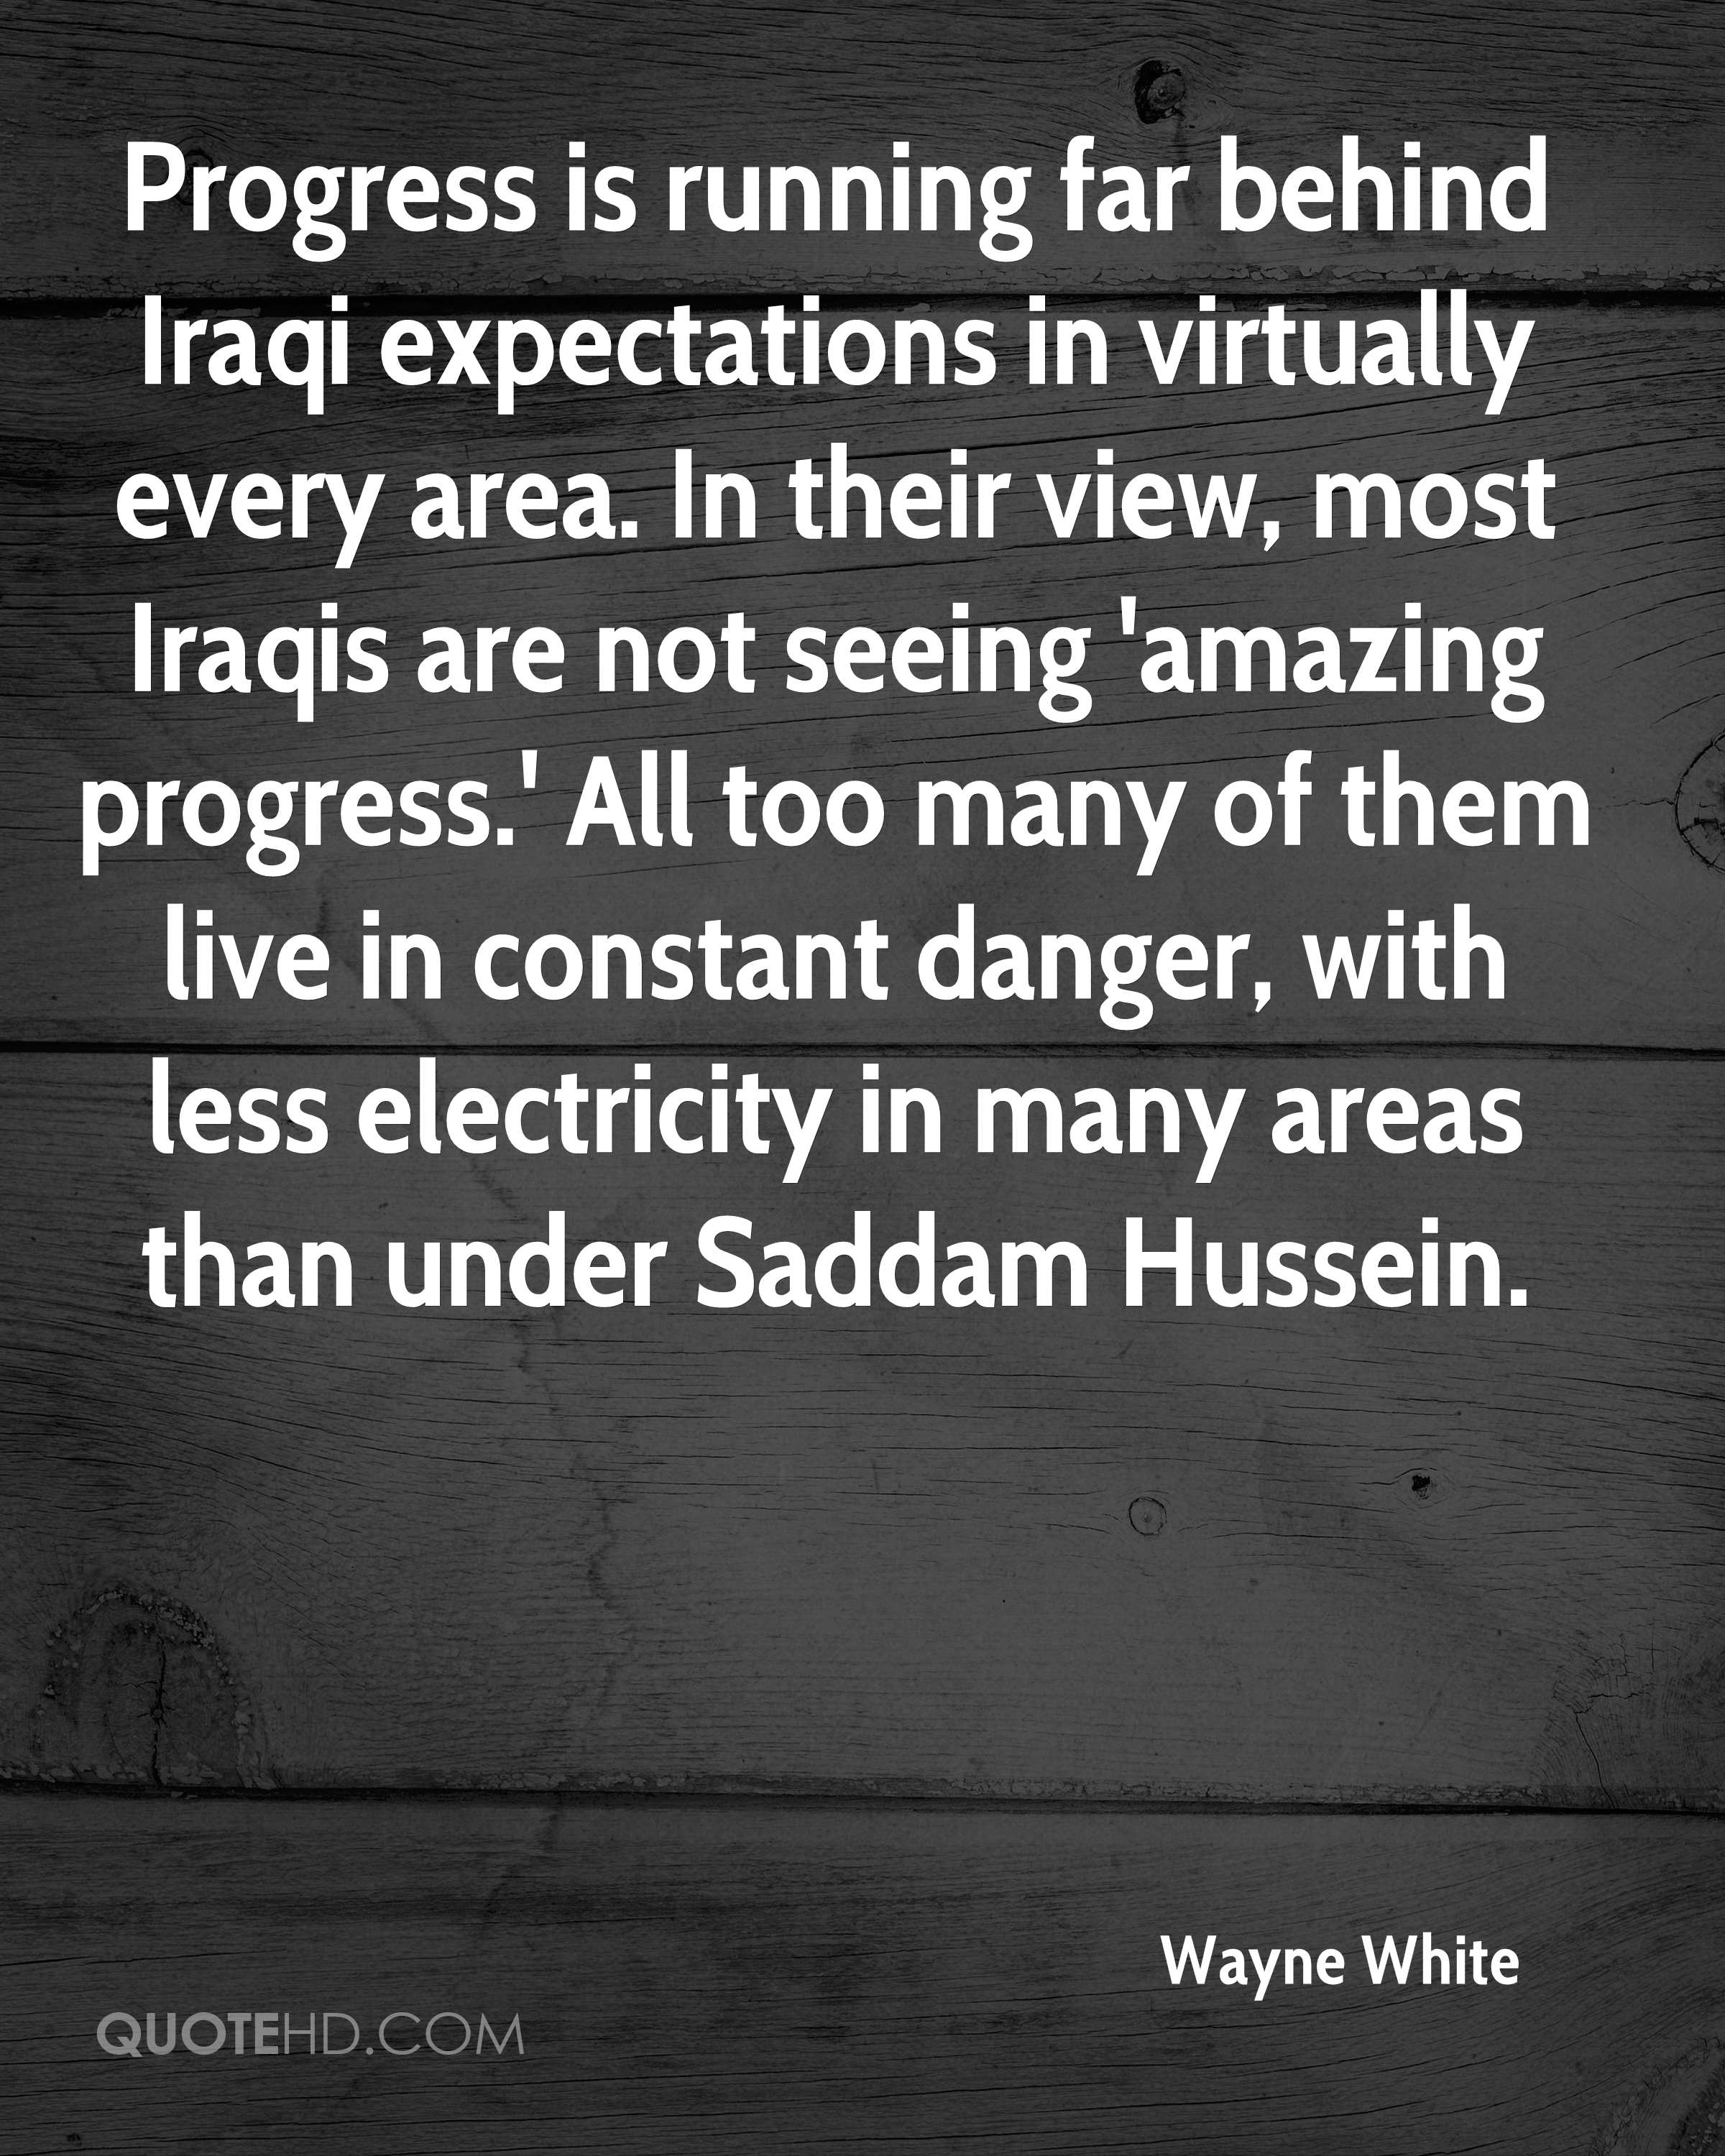 Progress is running far behind Iraqi expectations in virtually every area. In their view, most Iraqis are not seeing 'amazing progress.' All too many of them live in constant danger, with less electricity in many areas than under Saddam Hussein.